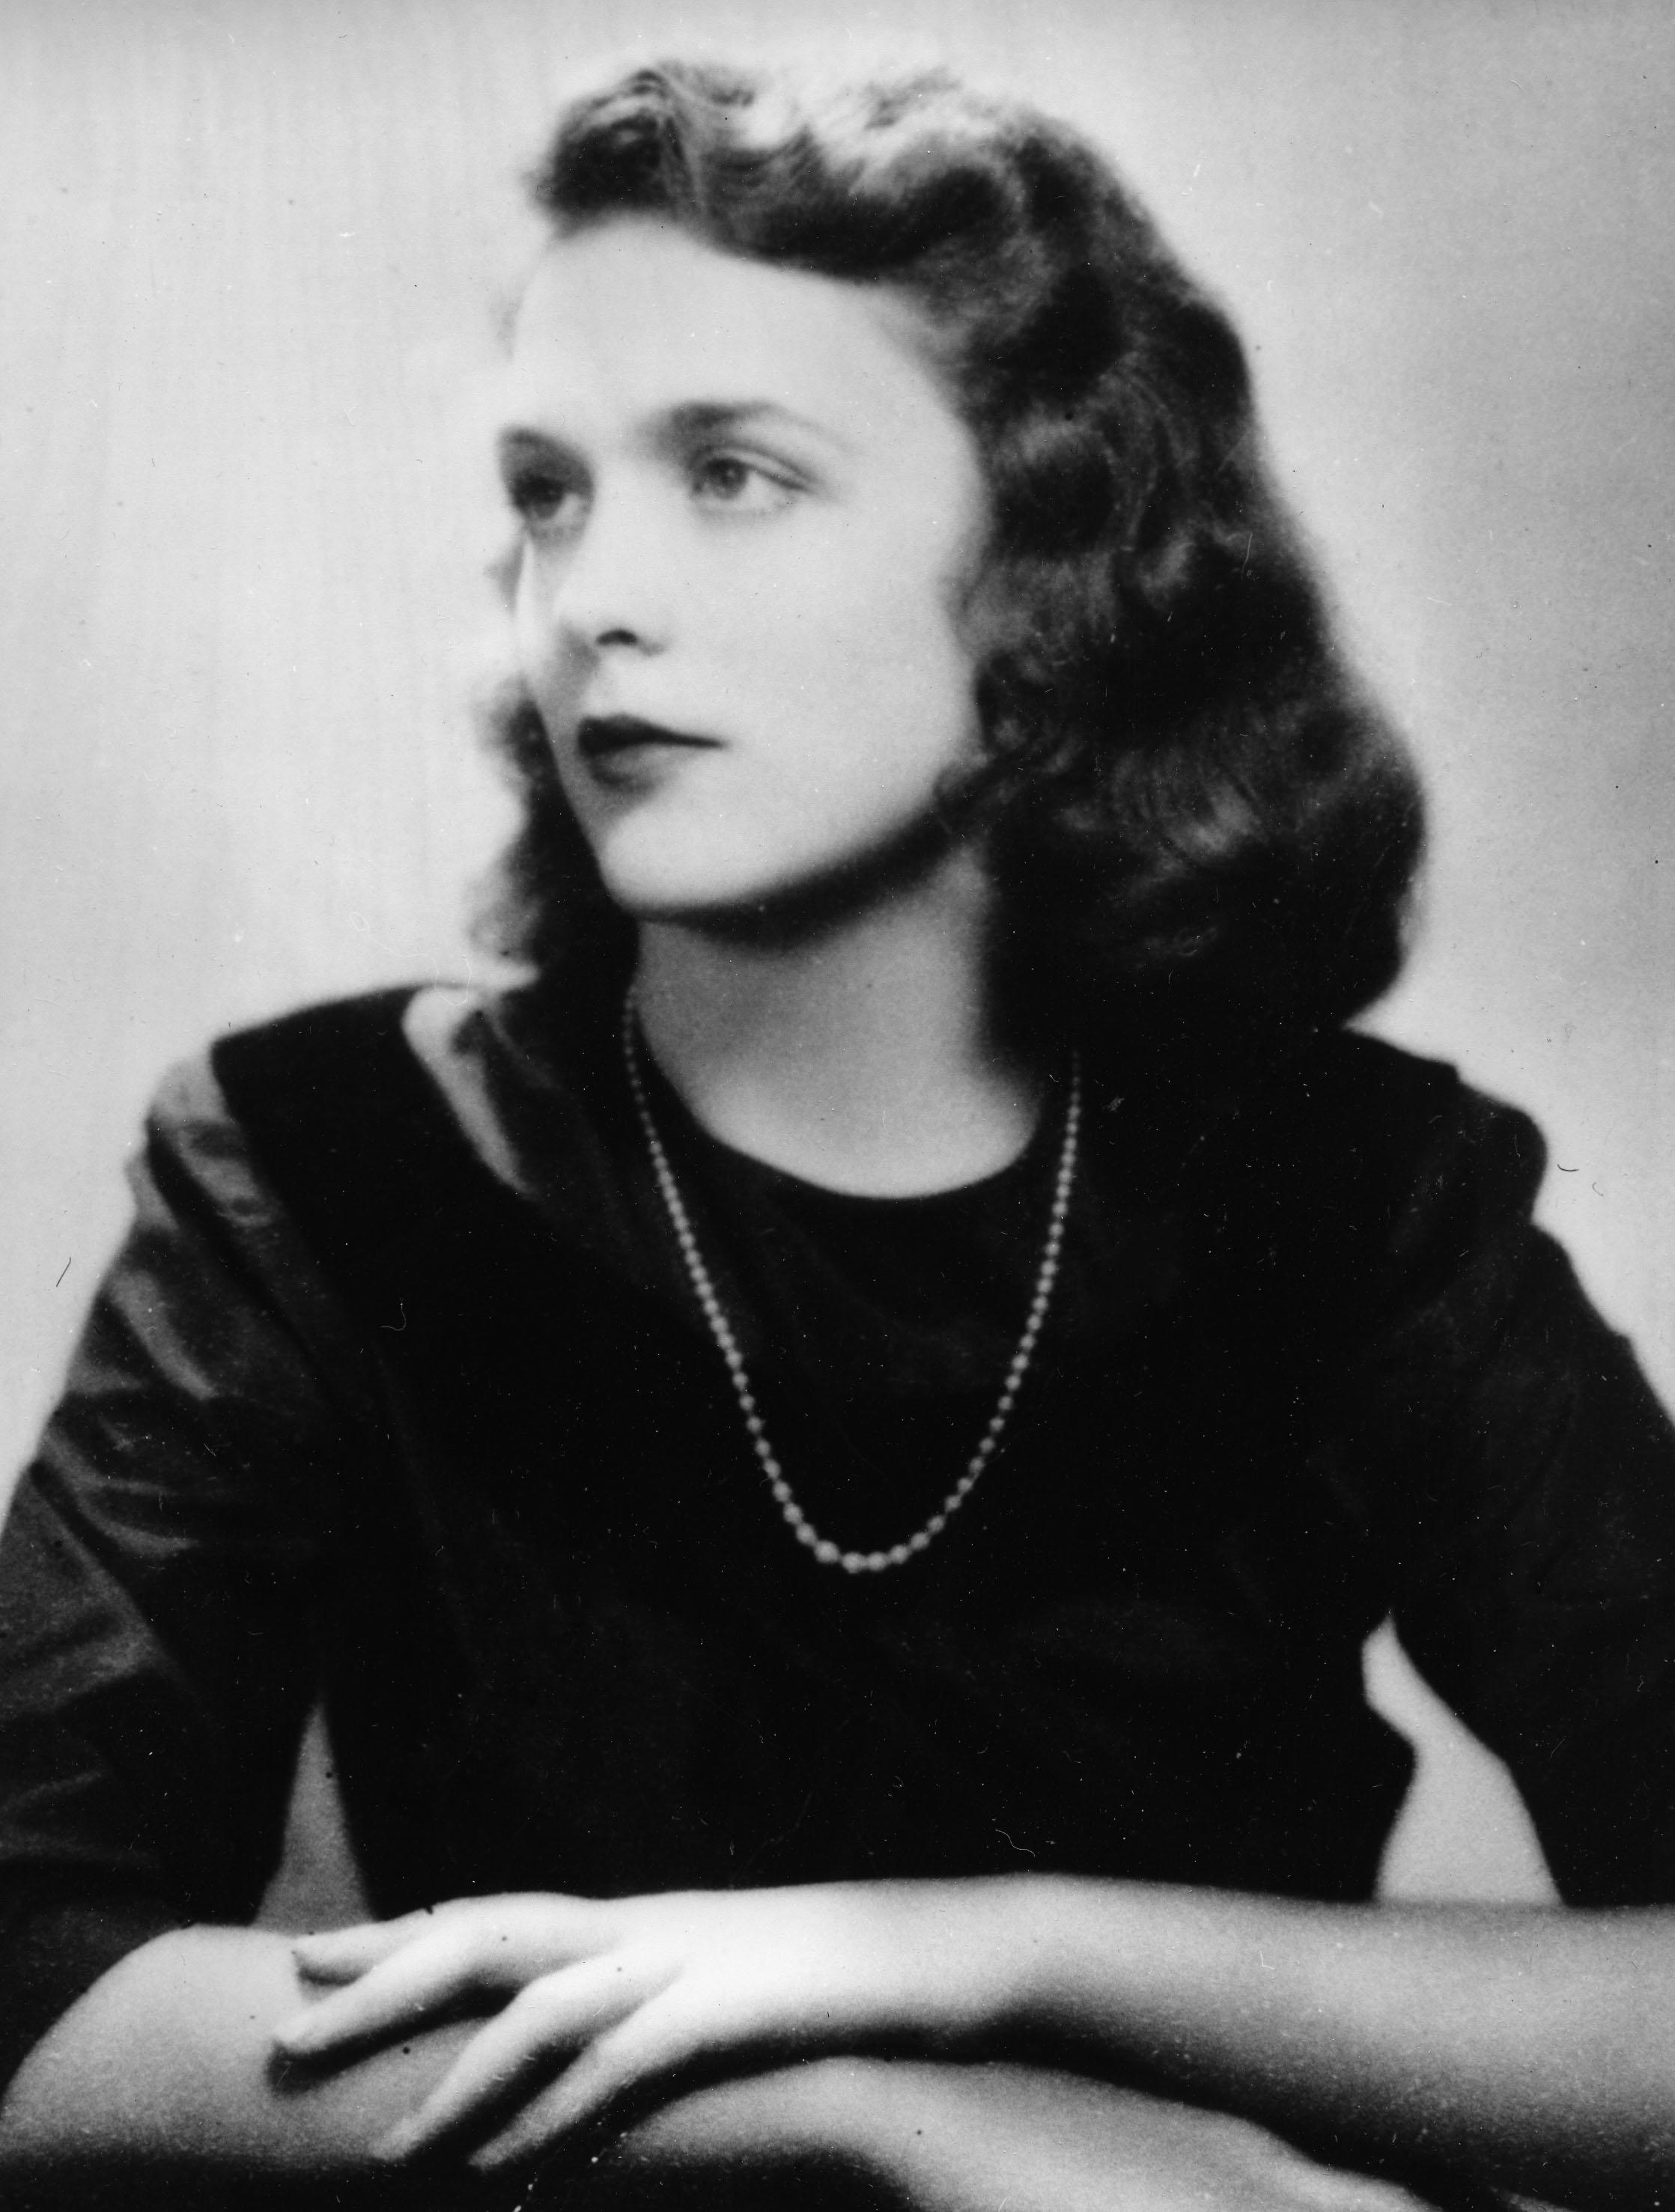 <p>Barbara Pierce, the future Barbara Bush, in her graduation photo from Ashley Hall, a finishing school in Charleston, S.C., in 1943. (Photo: AP) </p>